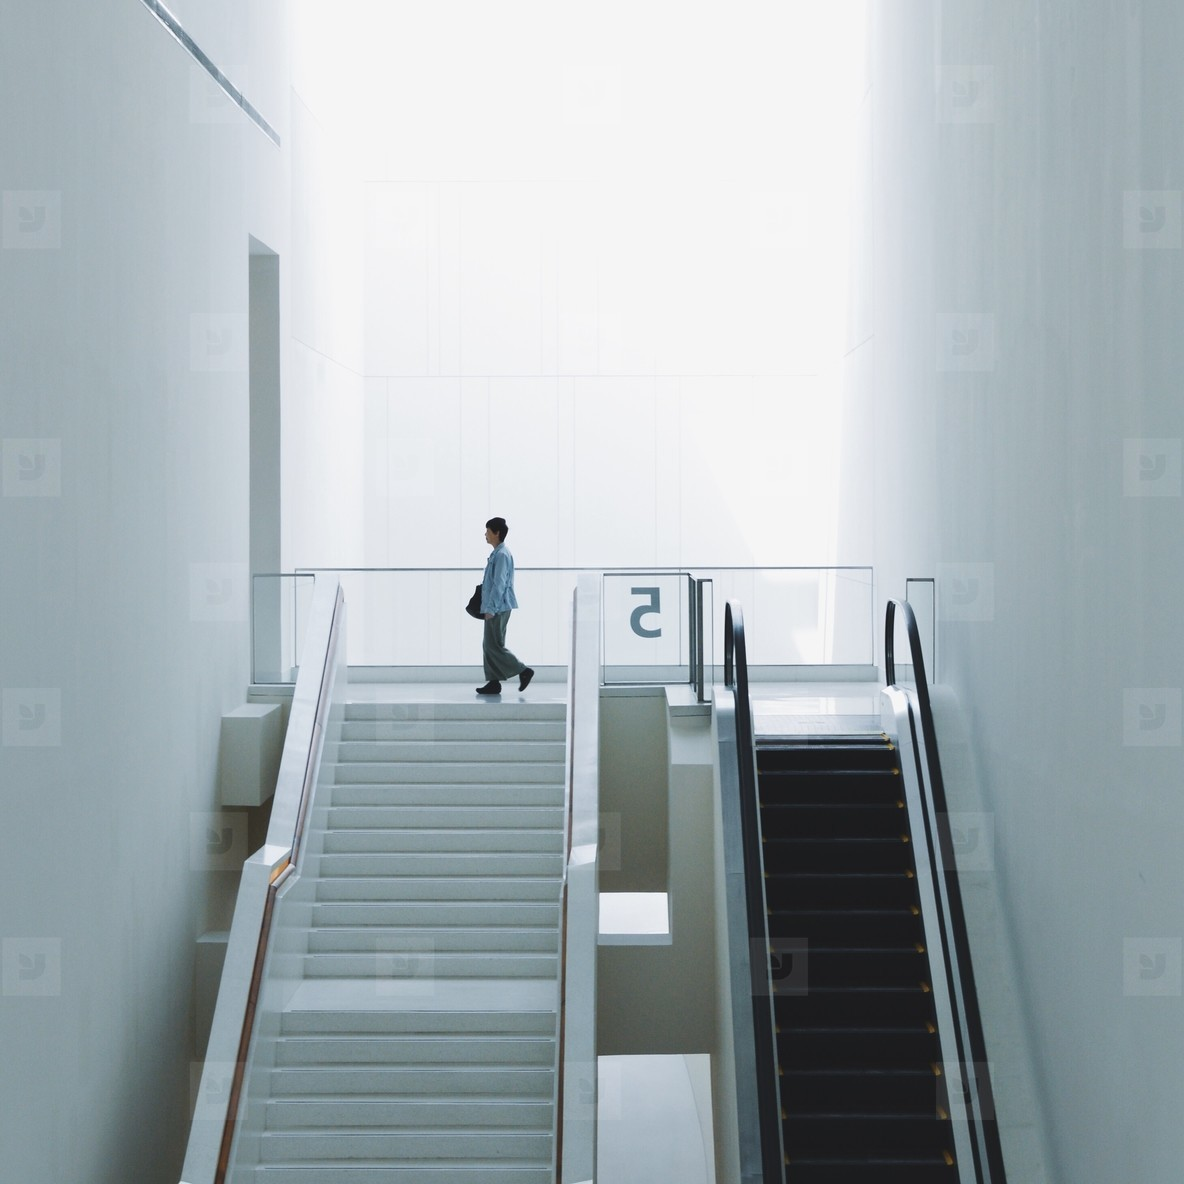 Stairway and escalator